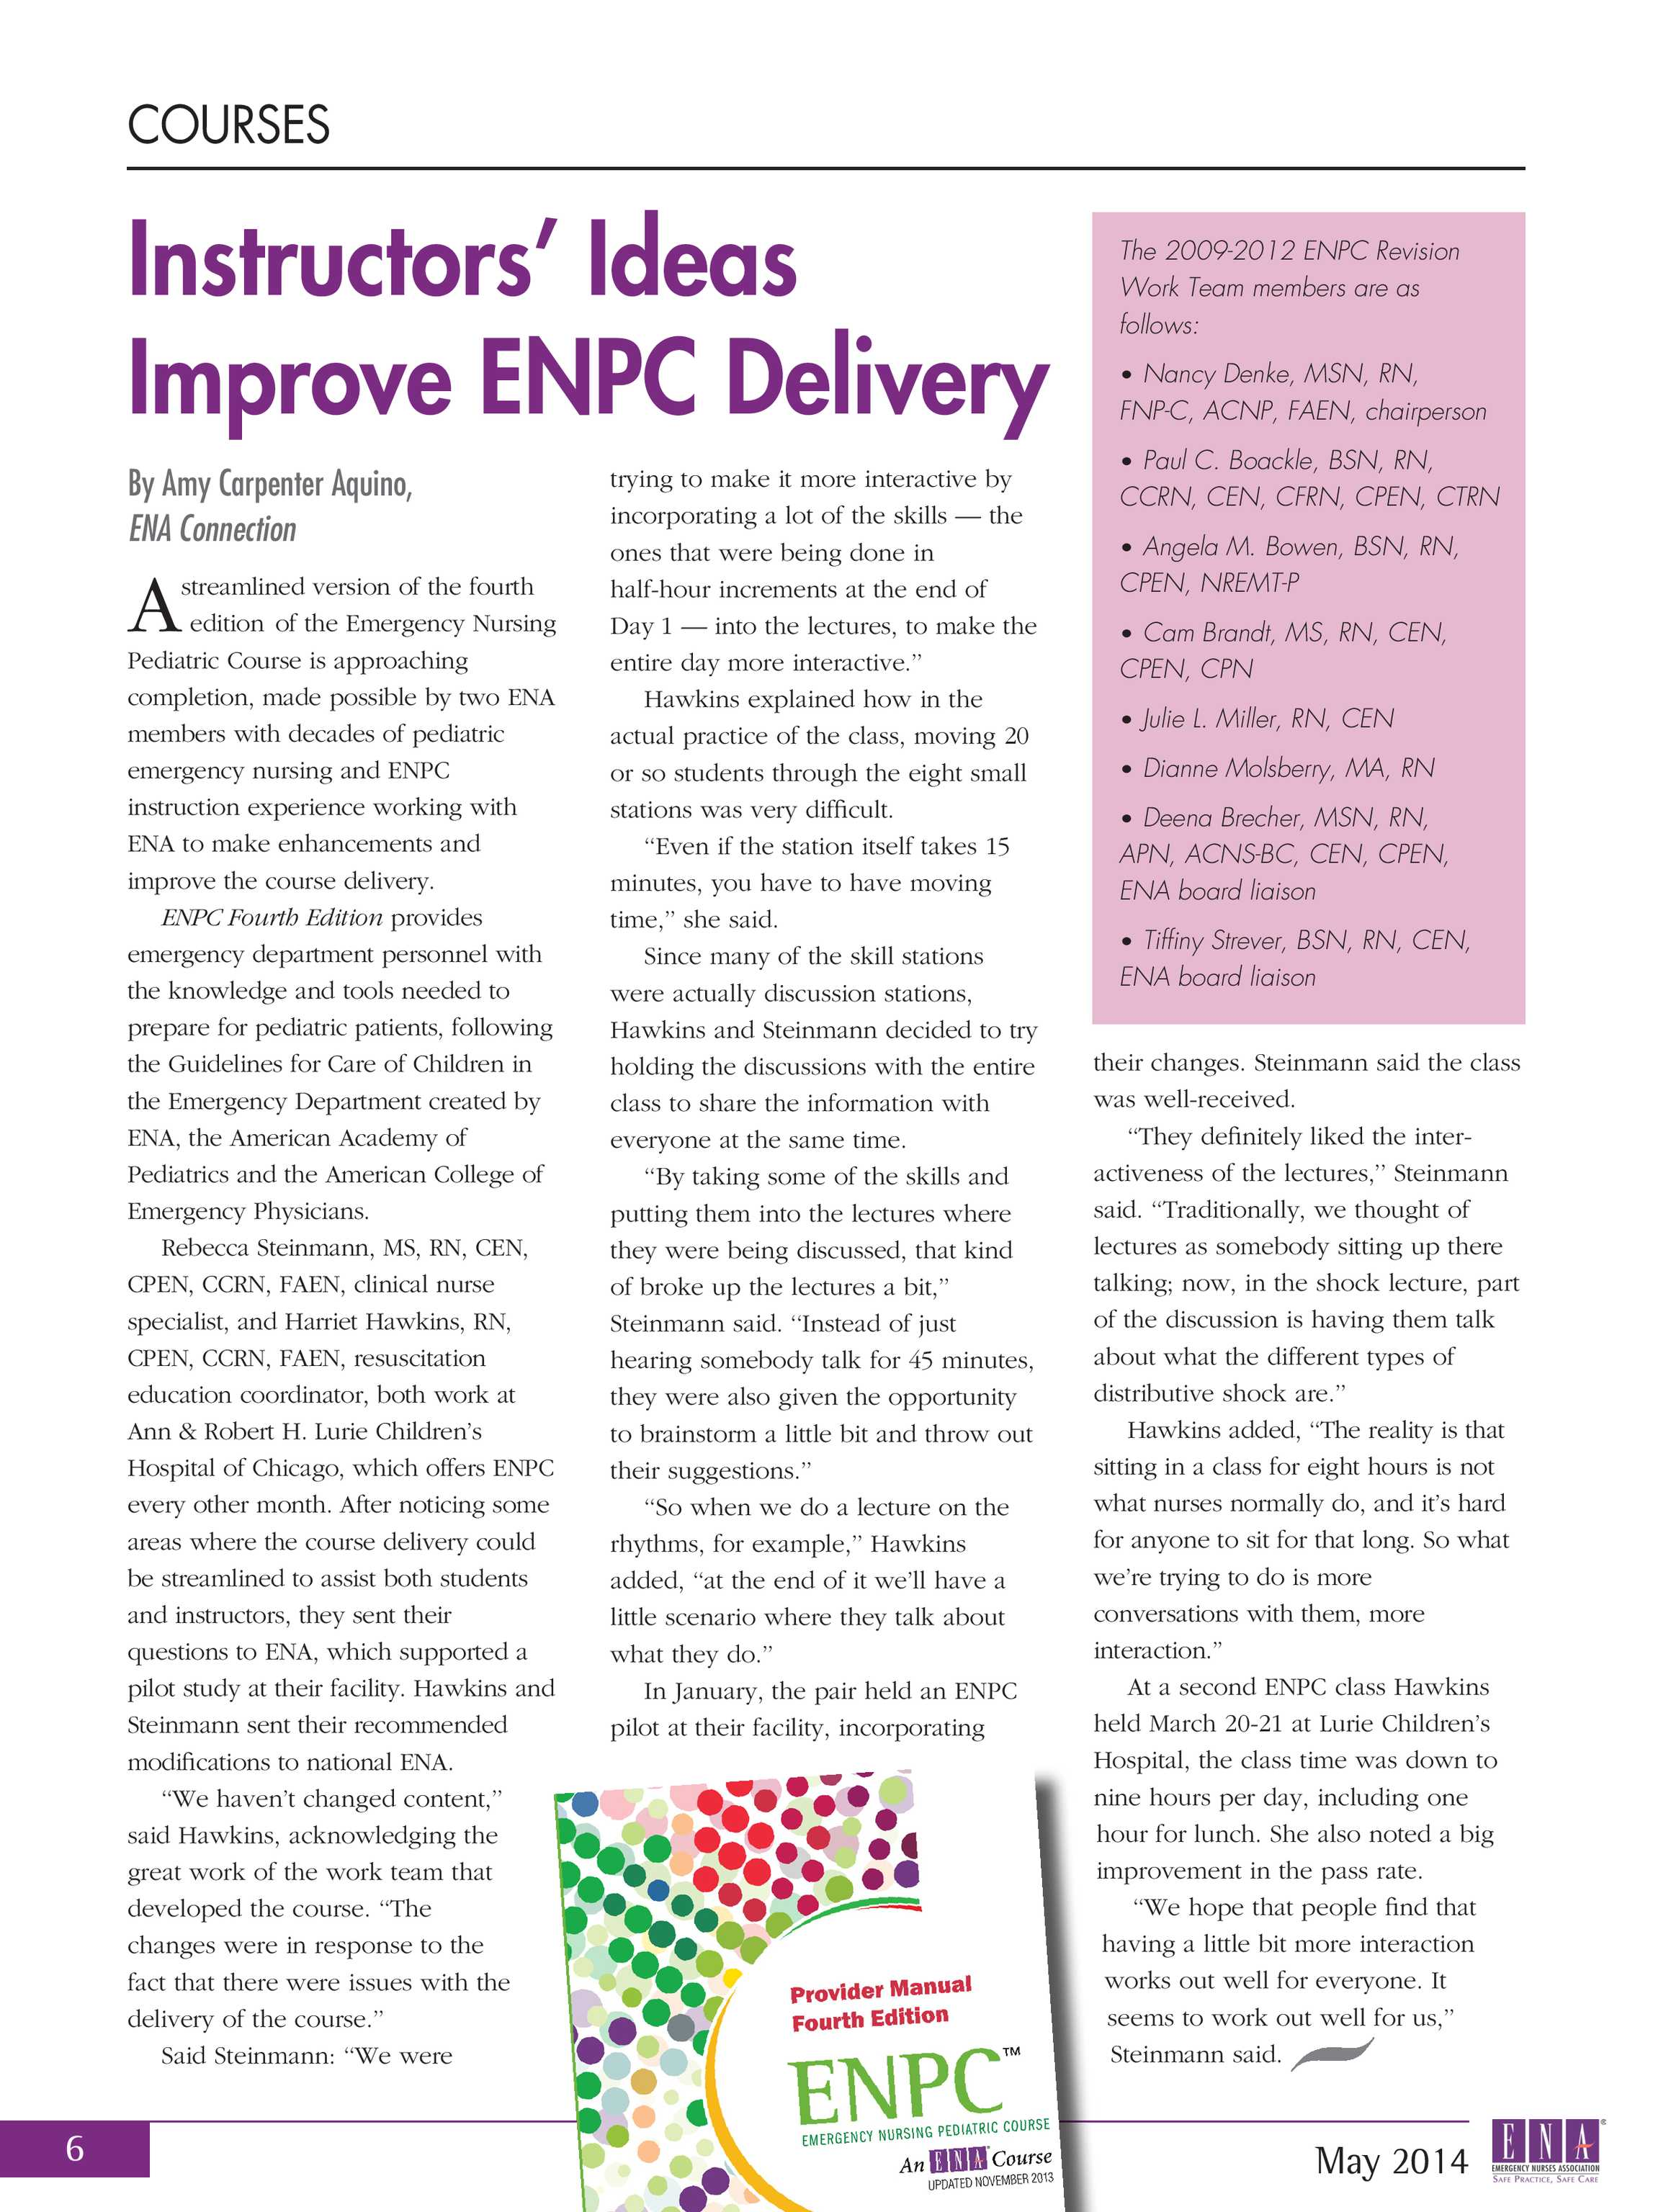 ENA Connection - May 2014 - page 6